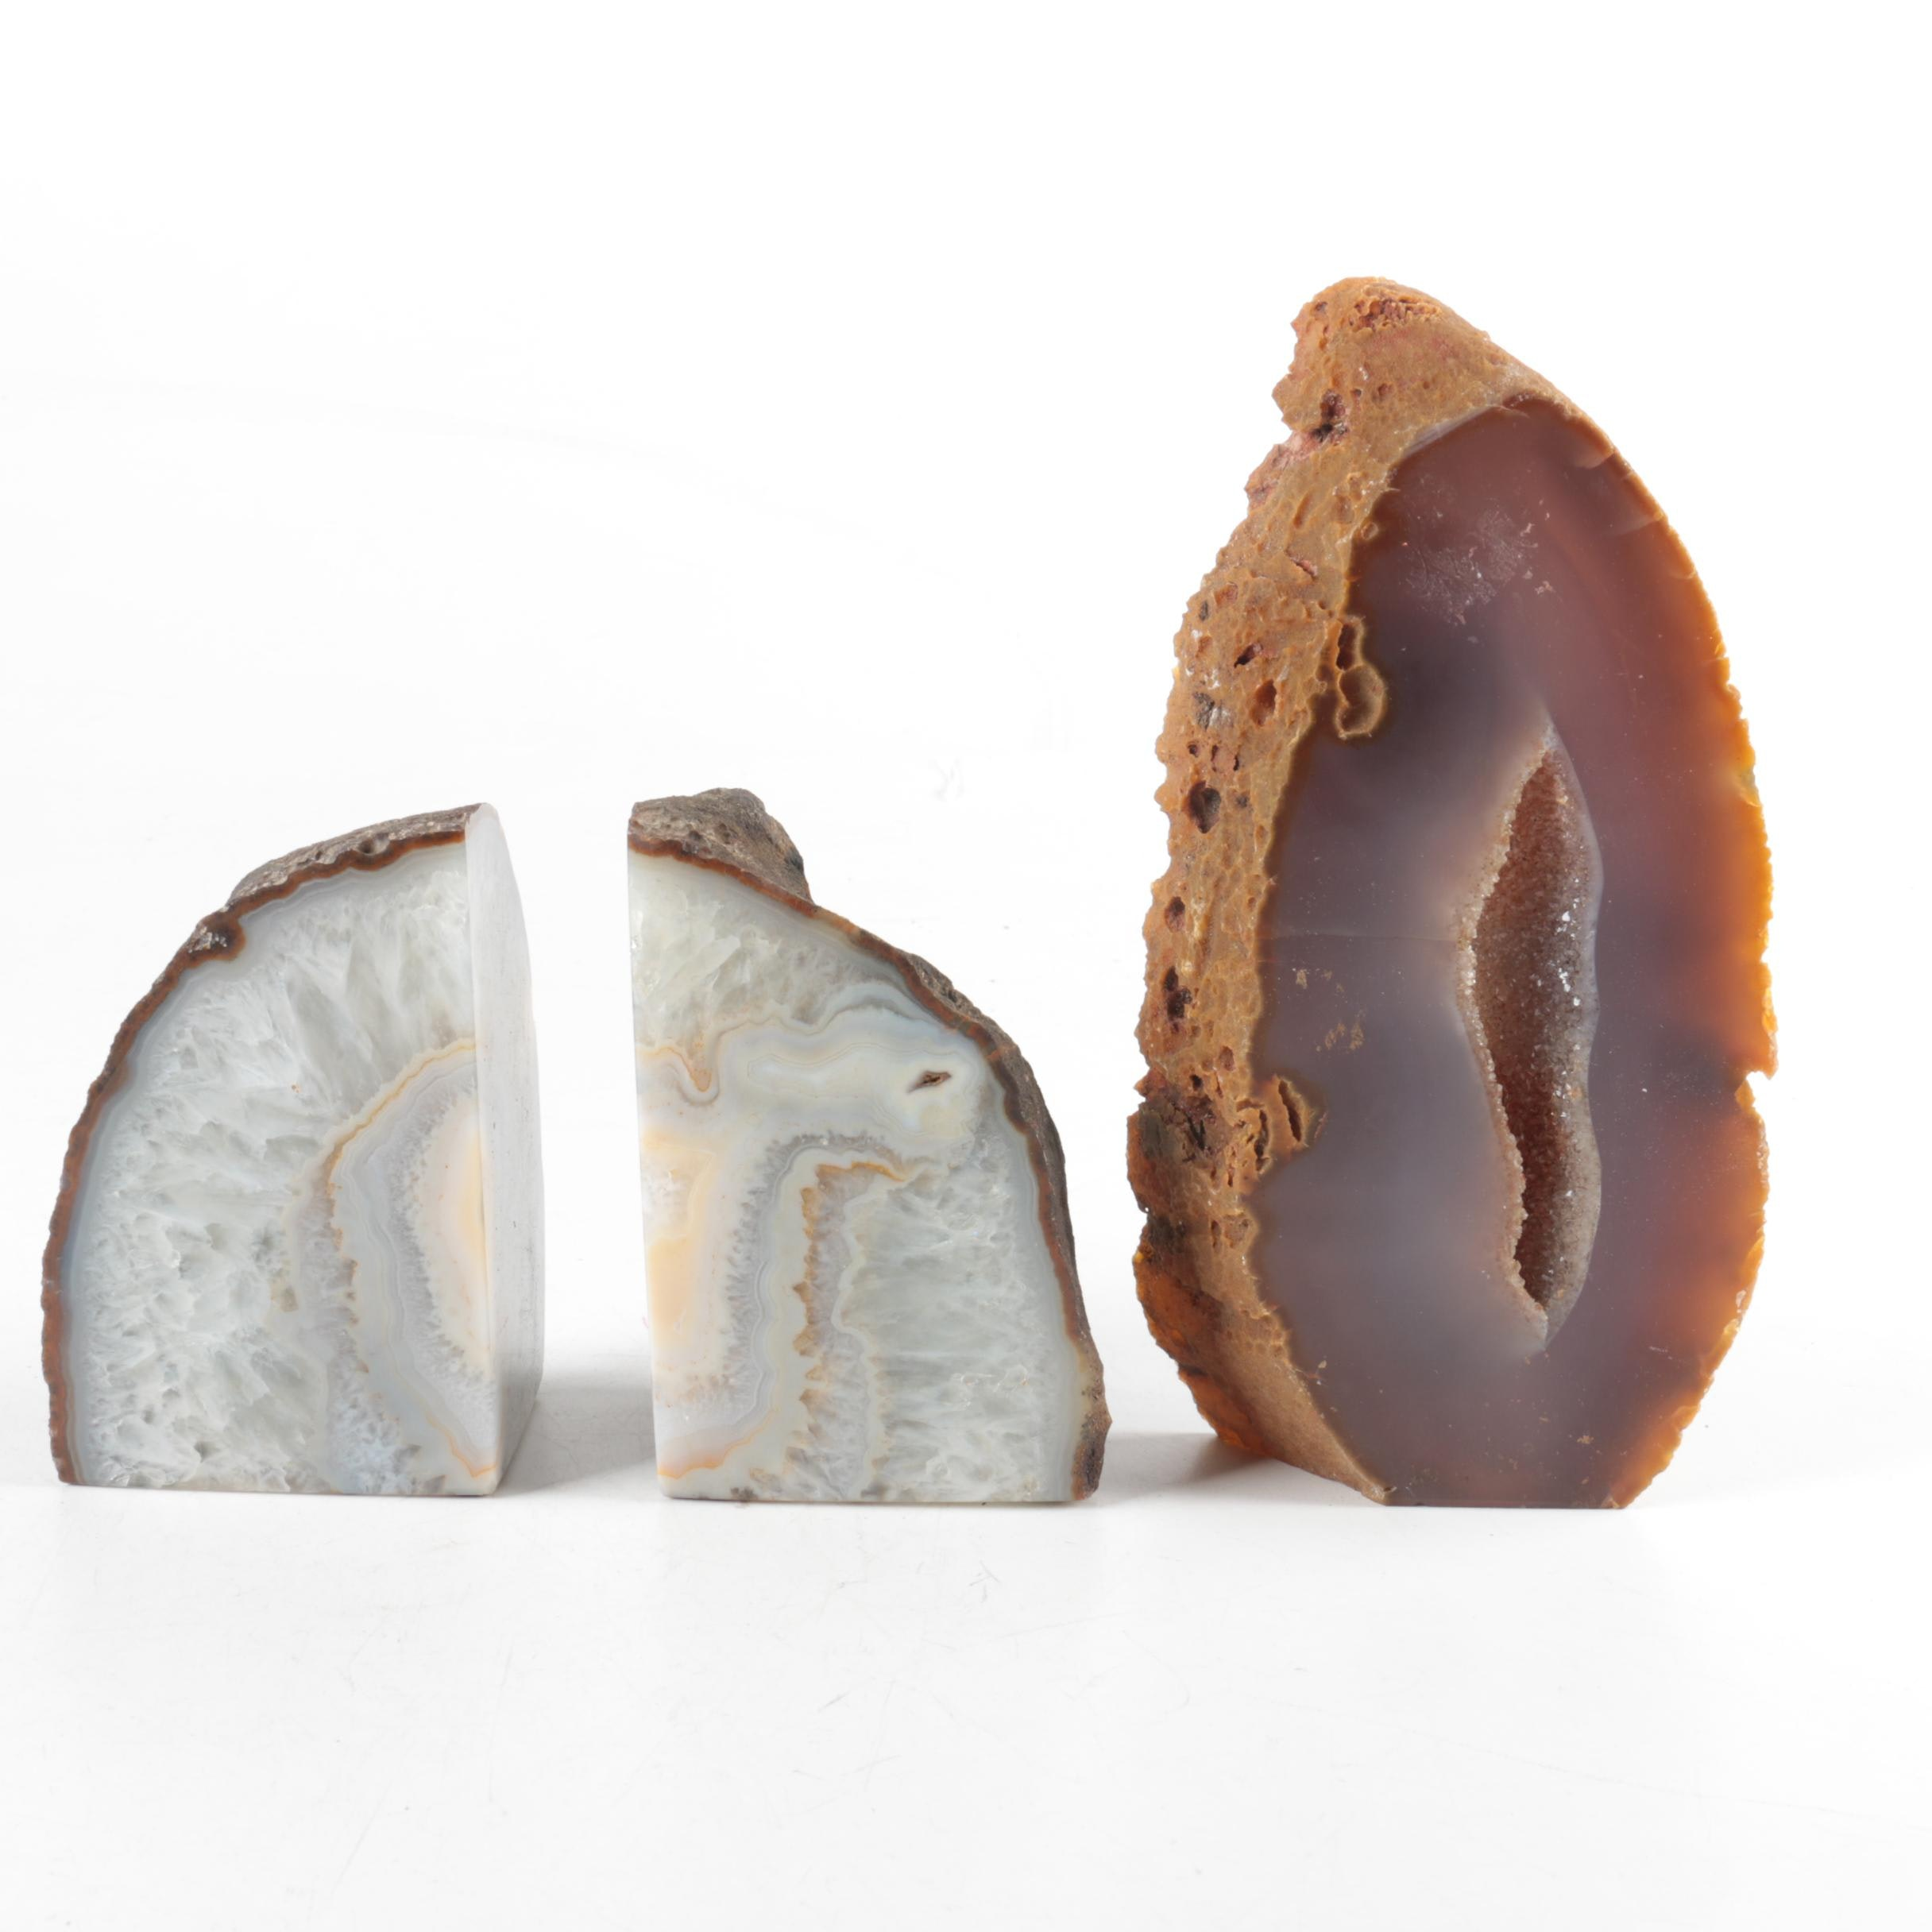 Agate Bookends and Geode Slice